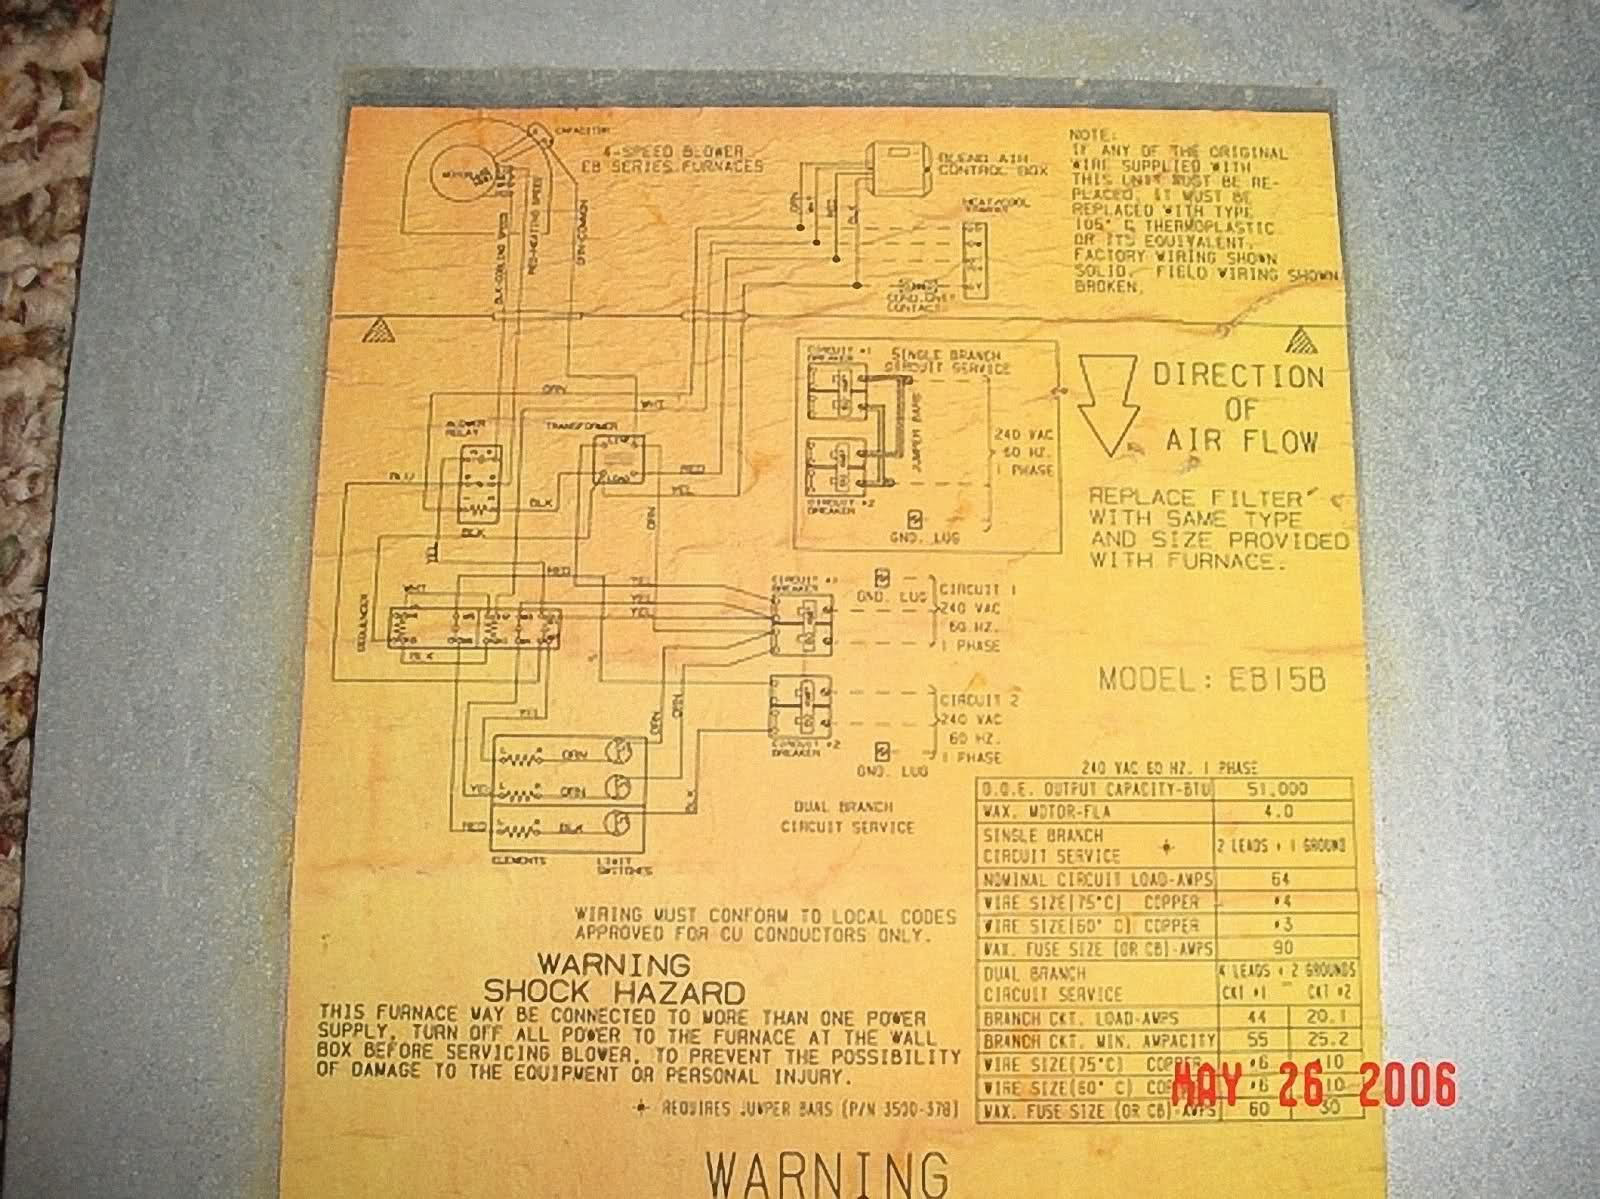 Coleman Electric Furnace For Mobile Home Wiring Diagrams Modular On - Coleman Mobile Home Electric Furnace Wiring Diagram